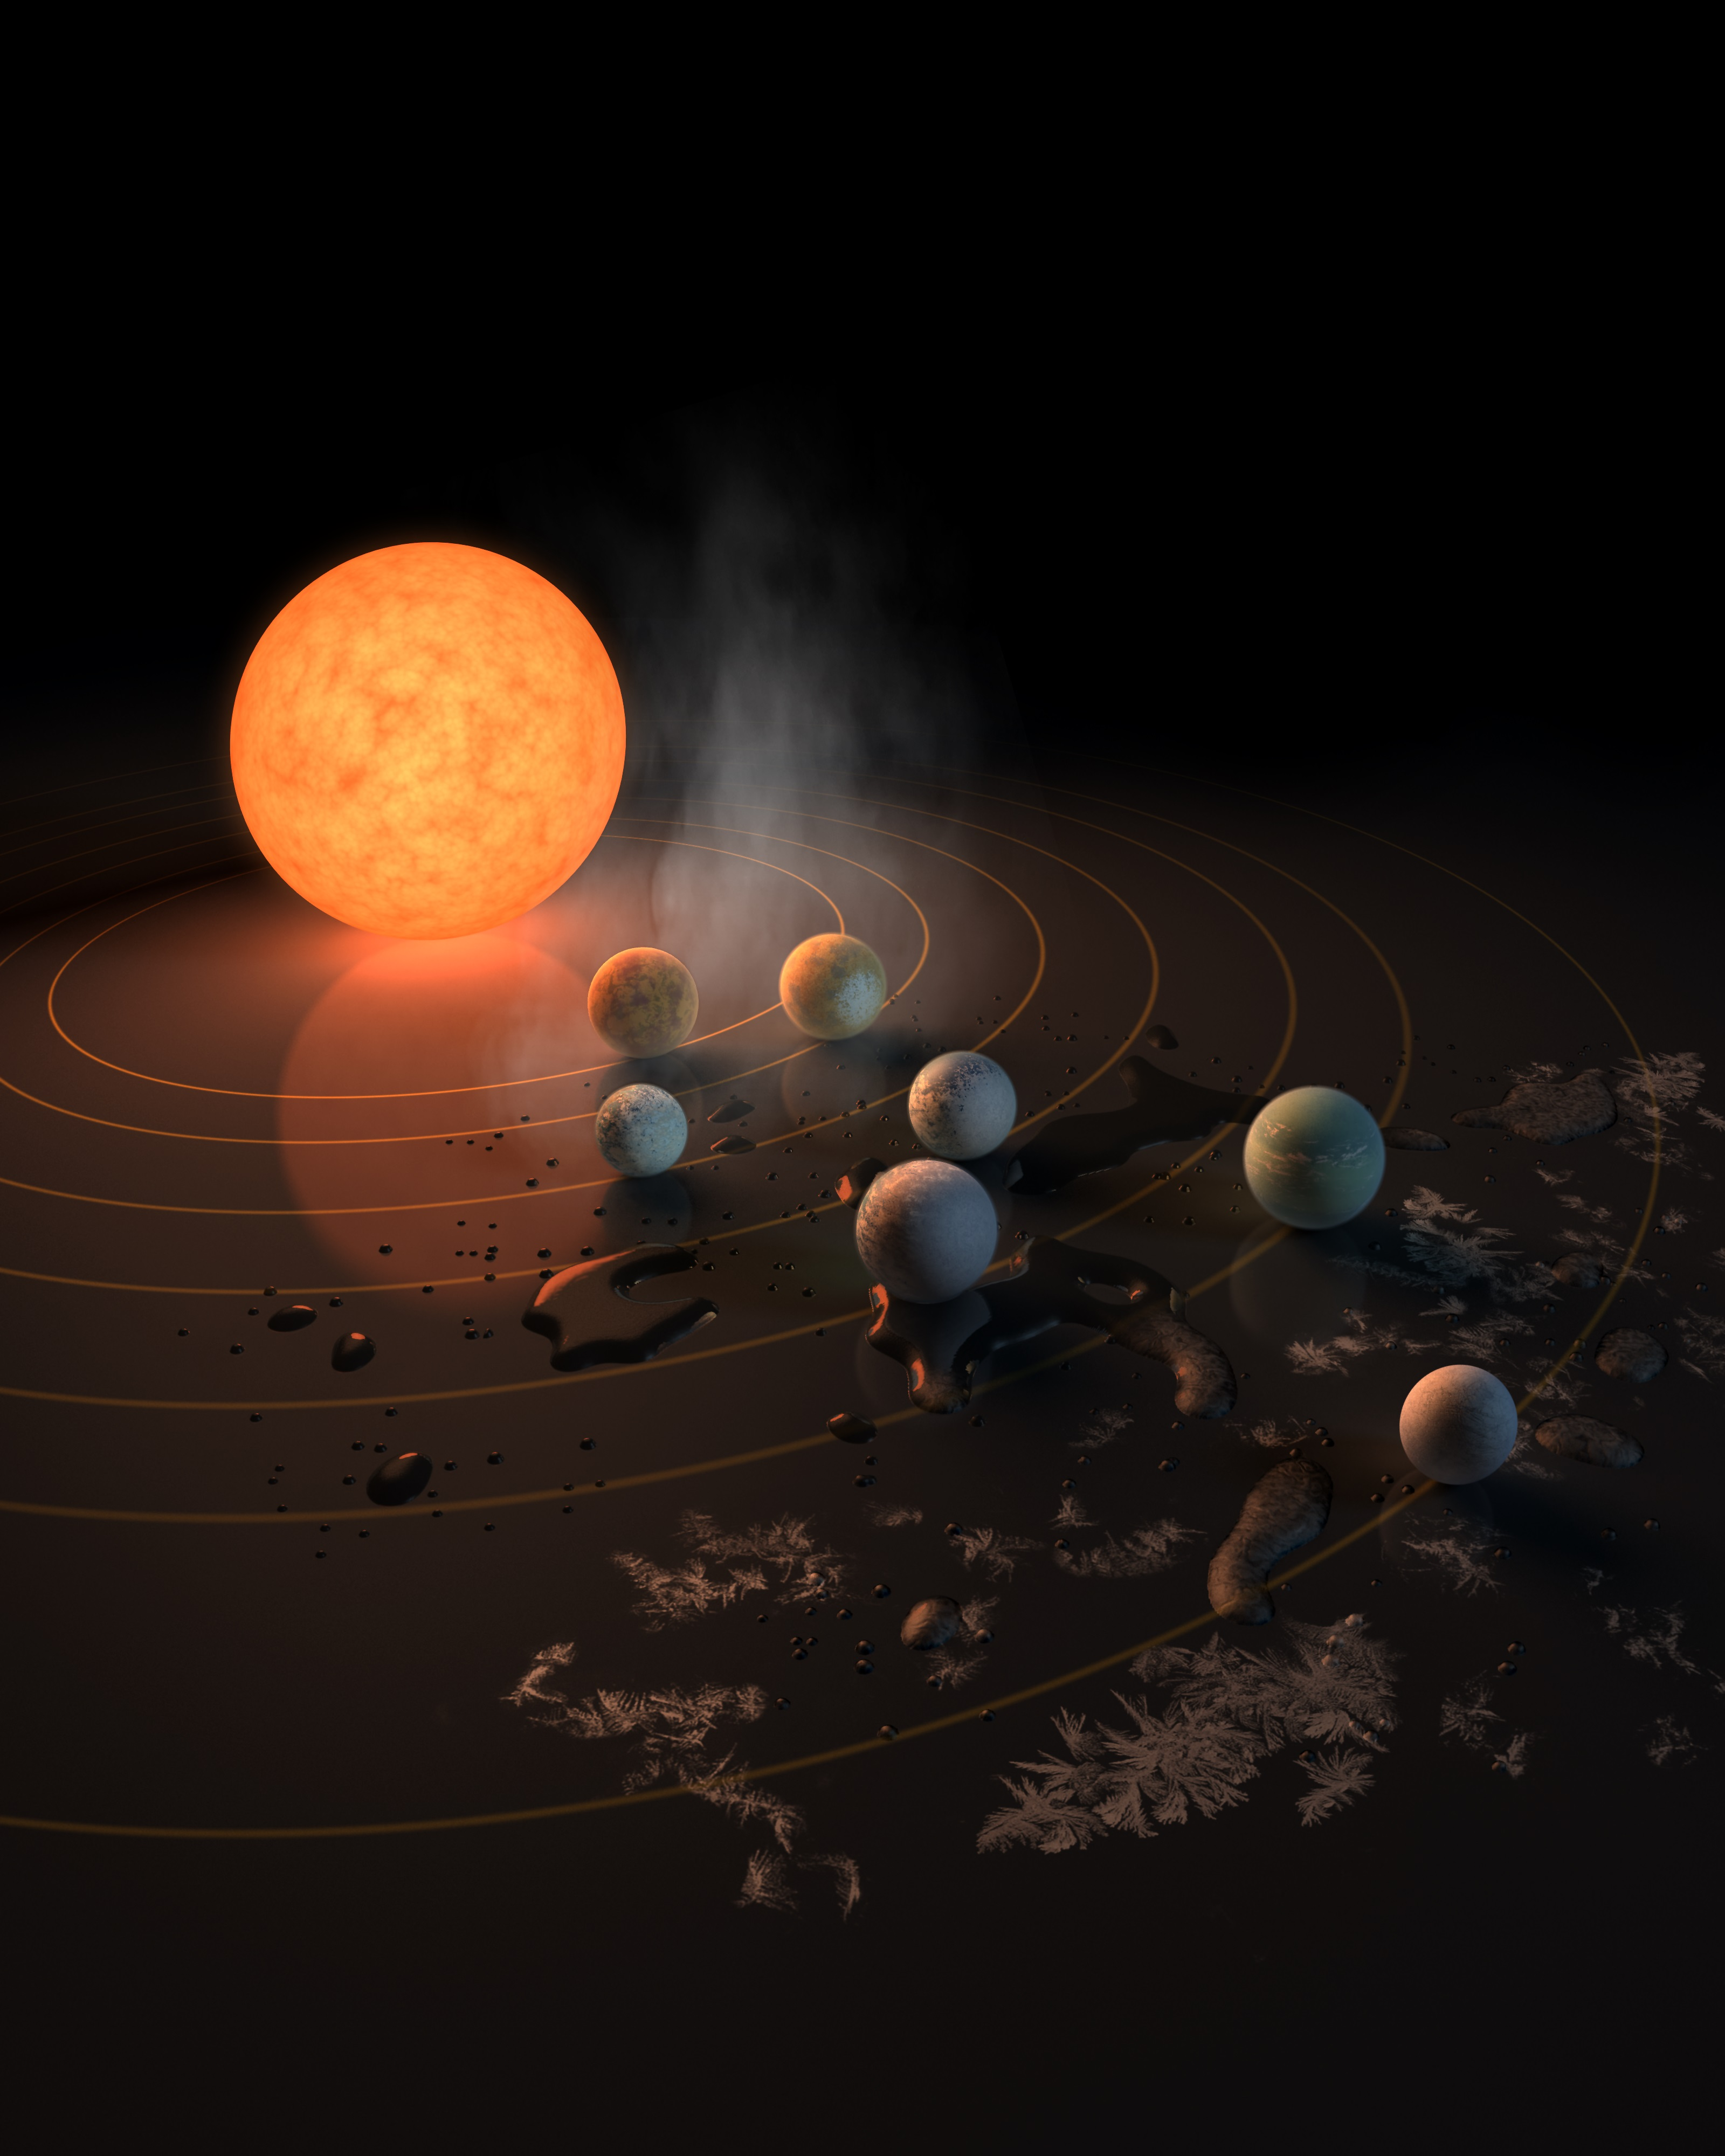 Exoplanet Discovery: The 7 Earth-Sized Planets of TRAPPIST-1 in Pictures